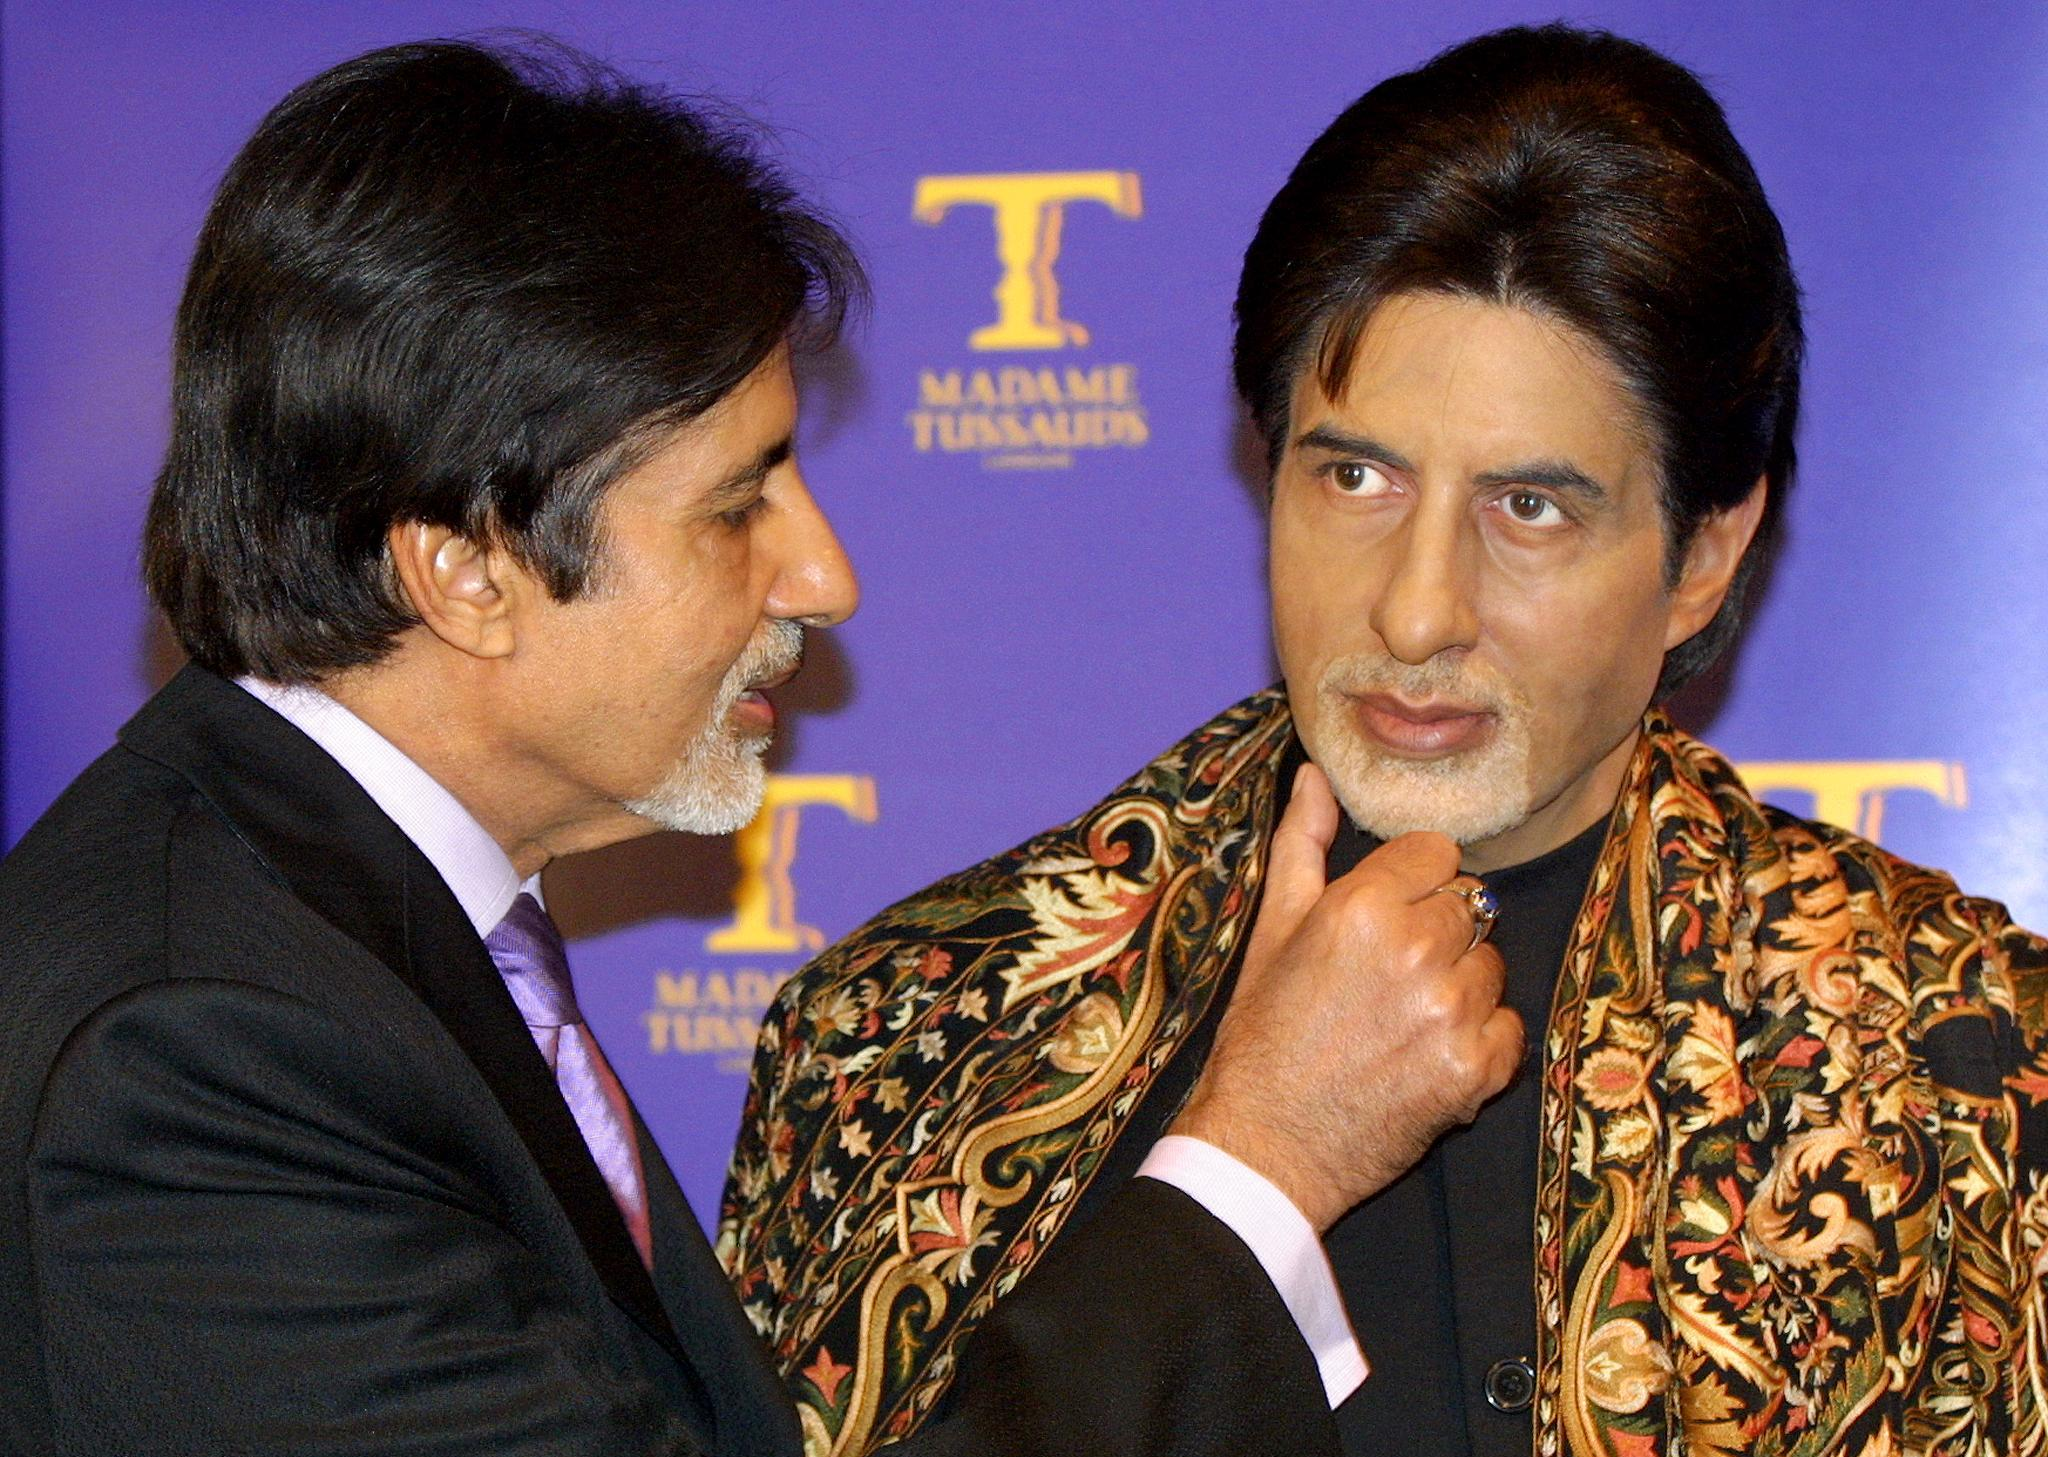 Amitabh Bachchan's wax statue at the Madame Tussauds, London